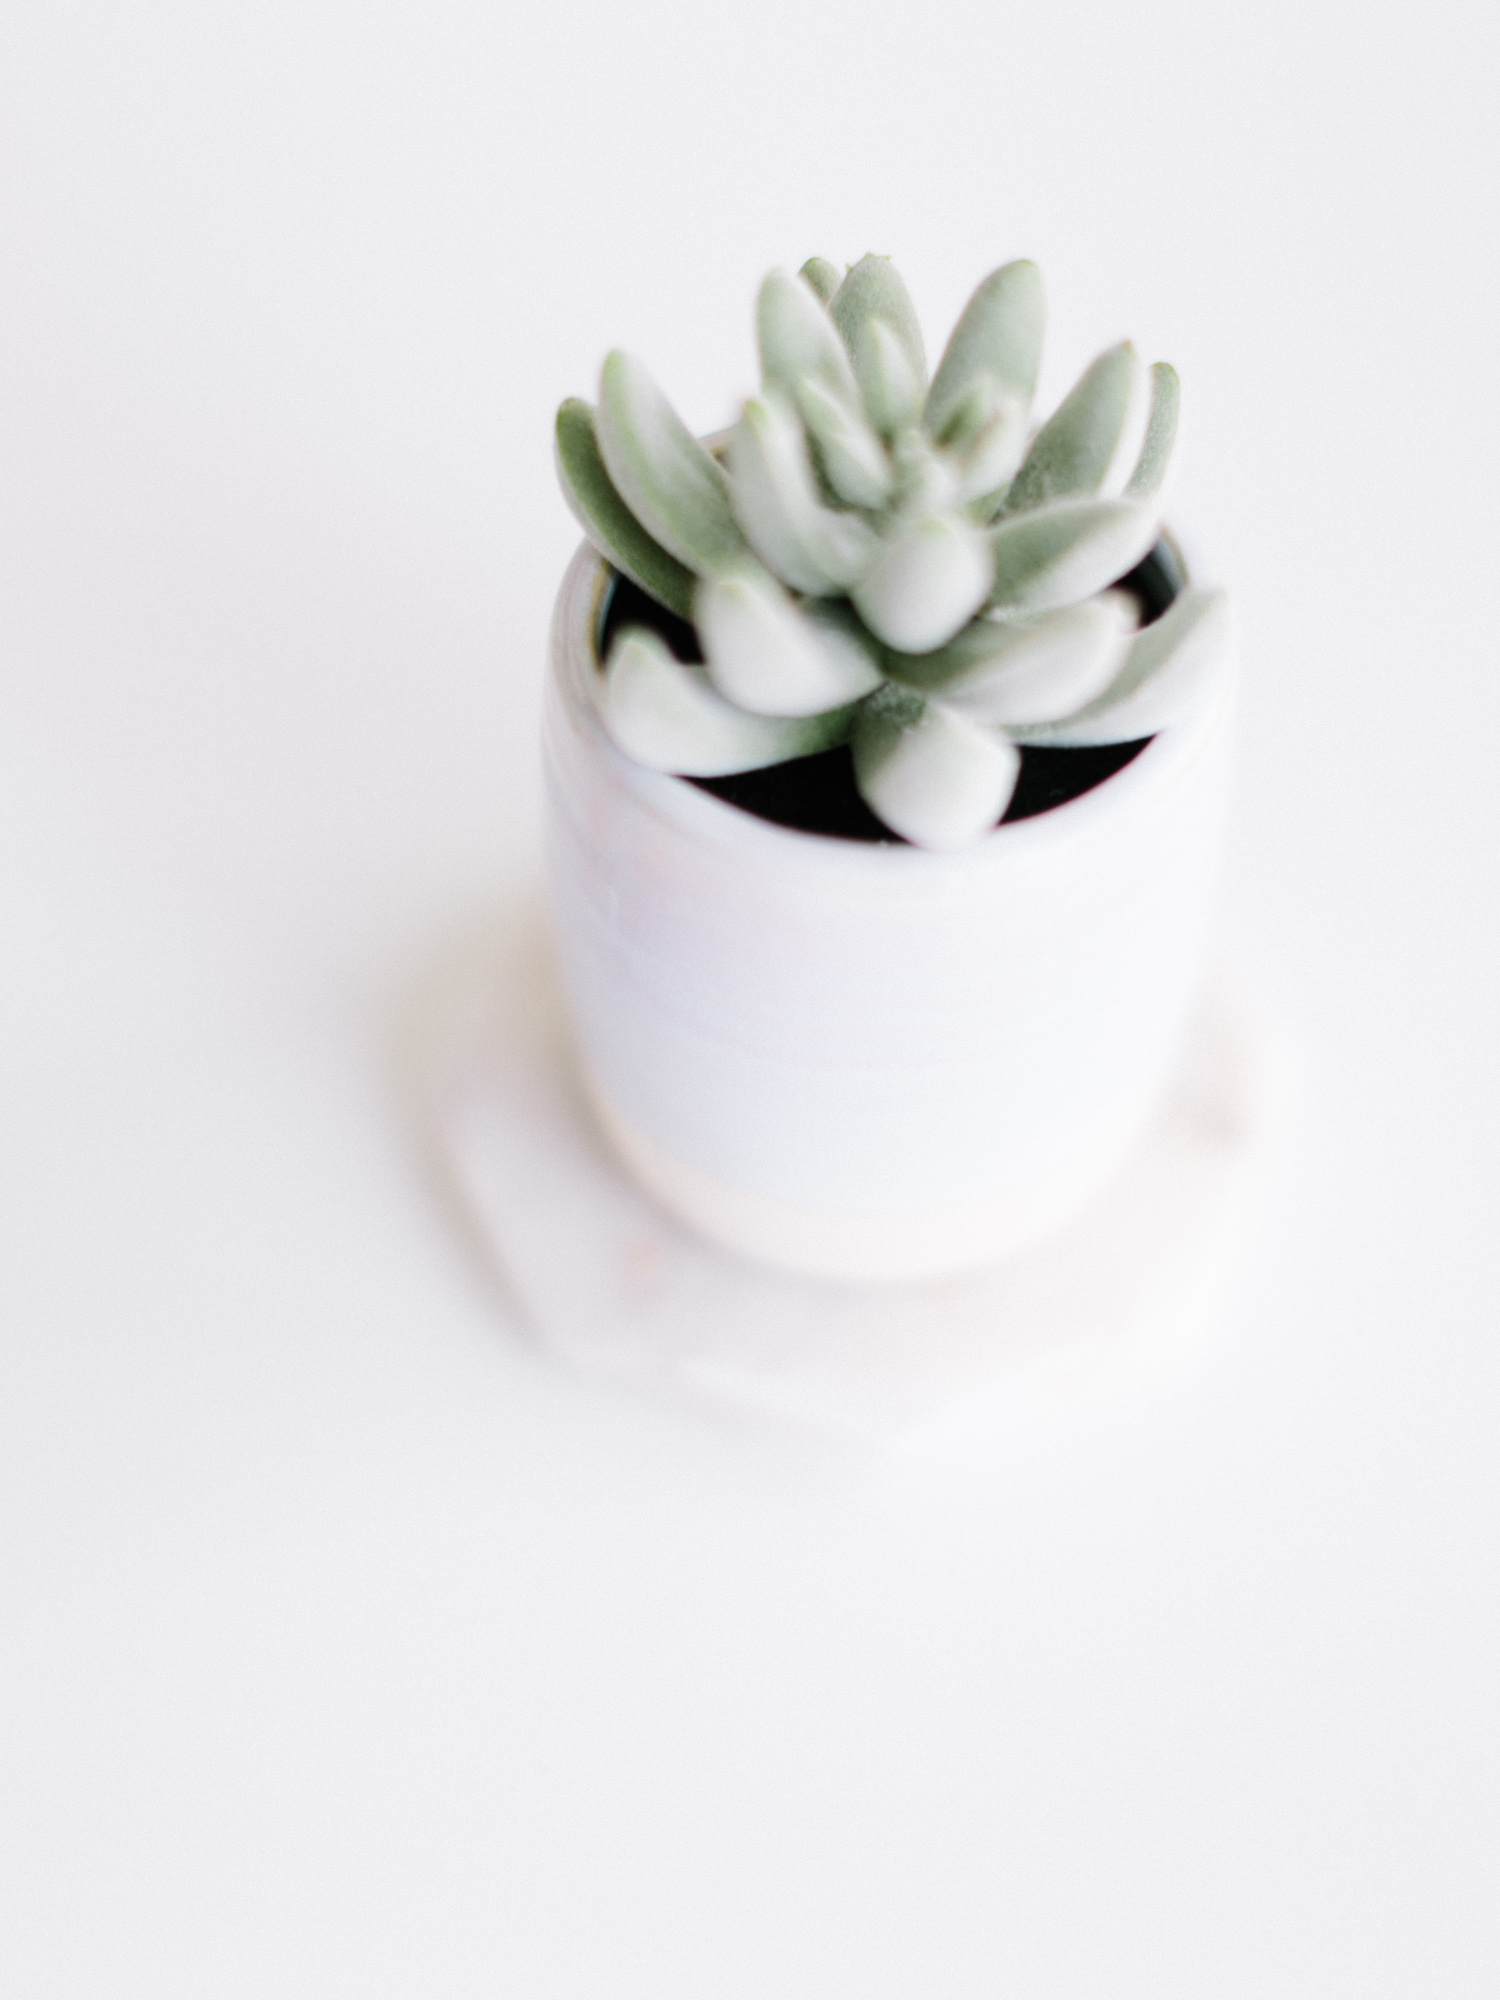 A succulent plant rests on a clean, white surface in airy light at Tribe Detroit for a brand photoshoot in Michigan